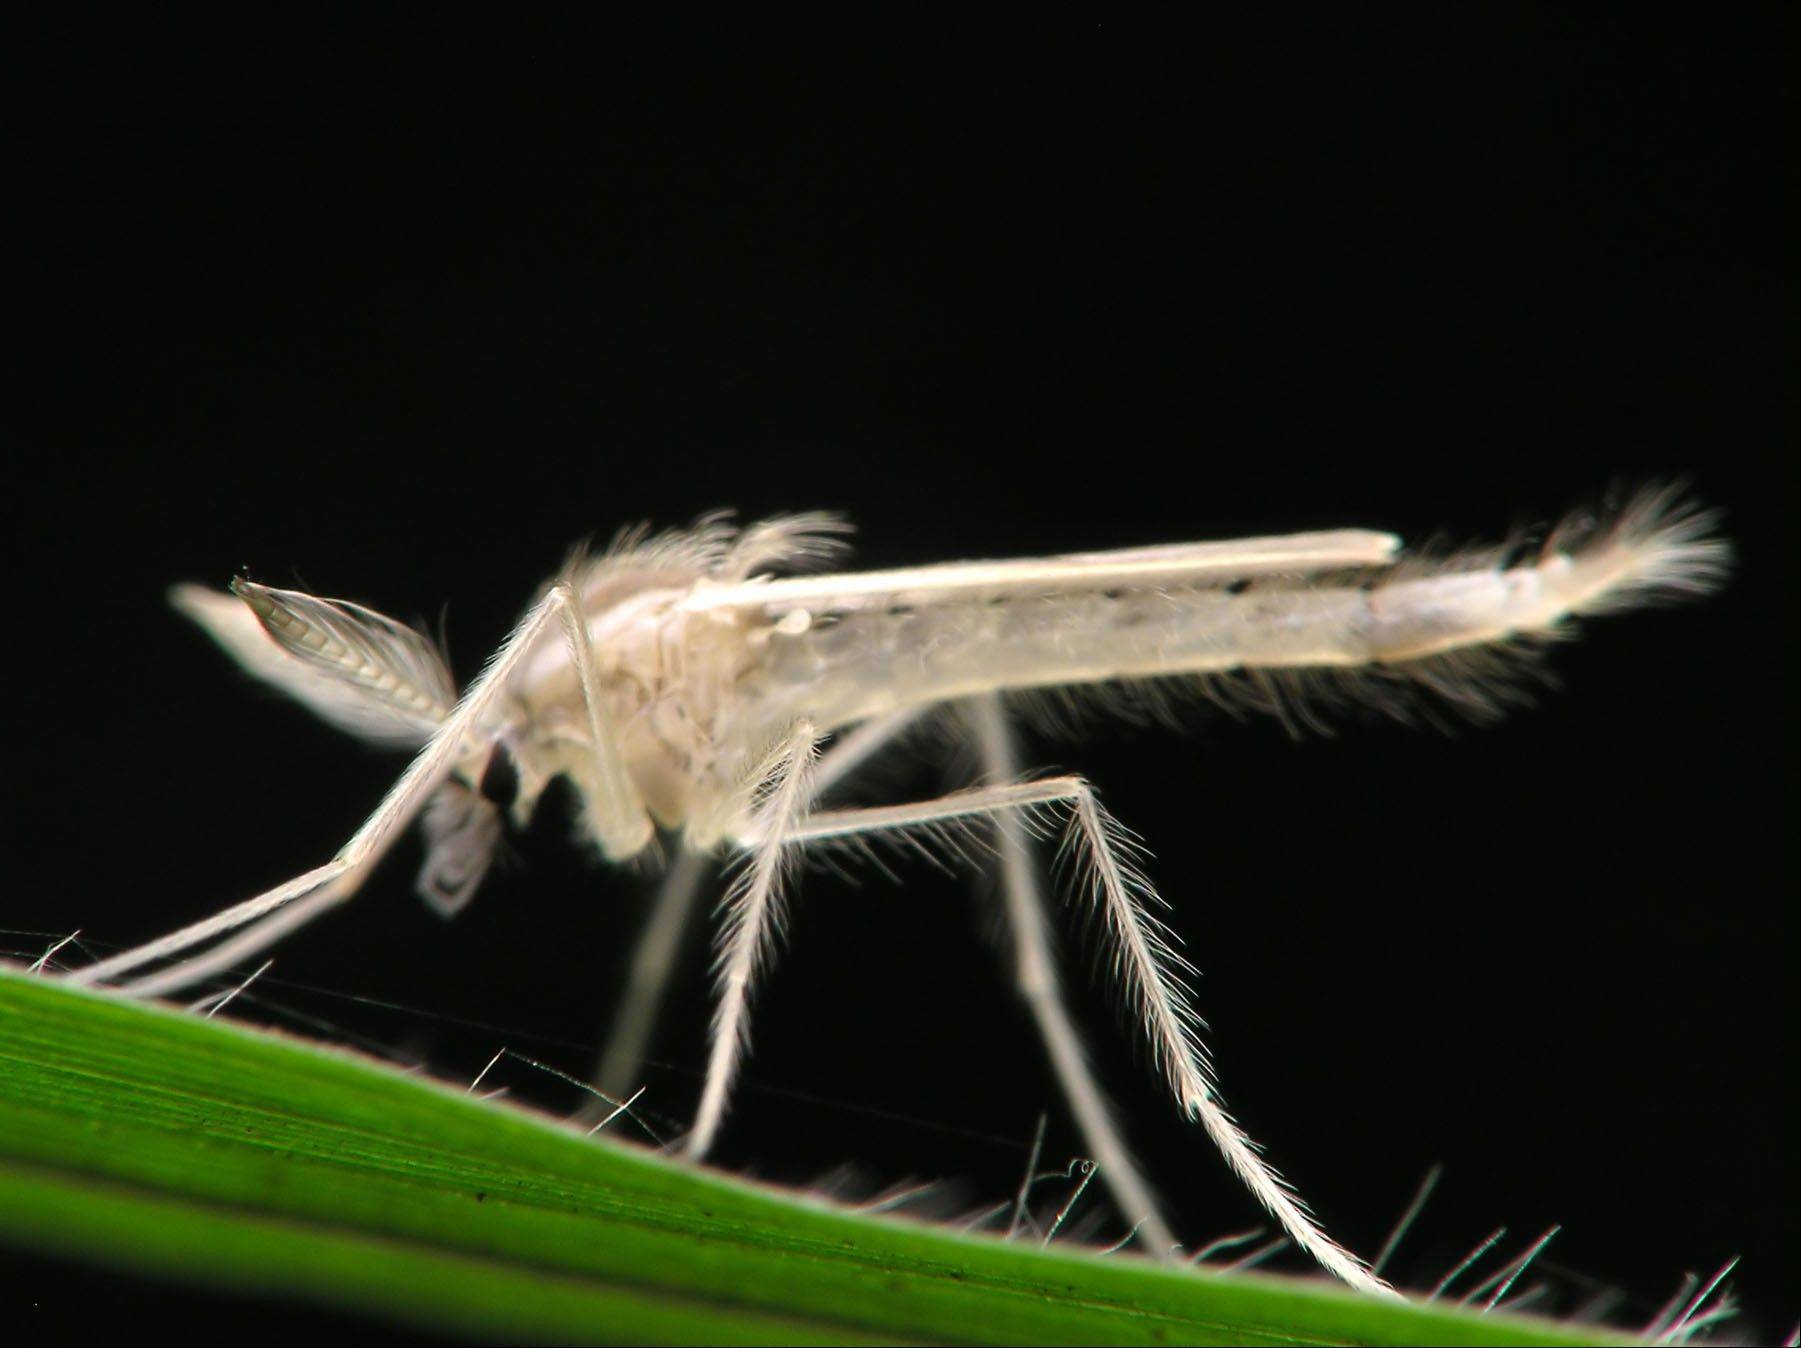 Mosquitoes test positive for West Nile virus in Fox River Grove